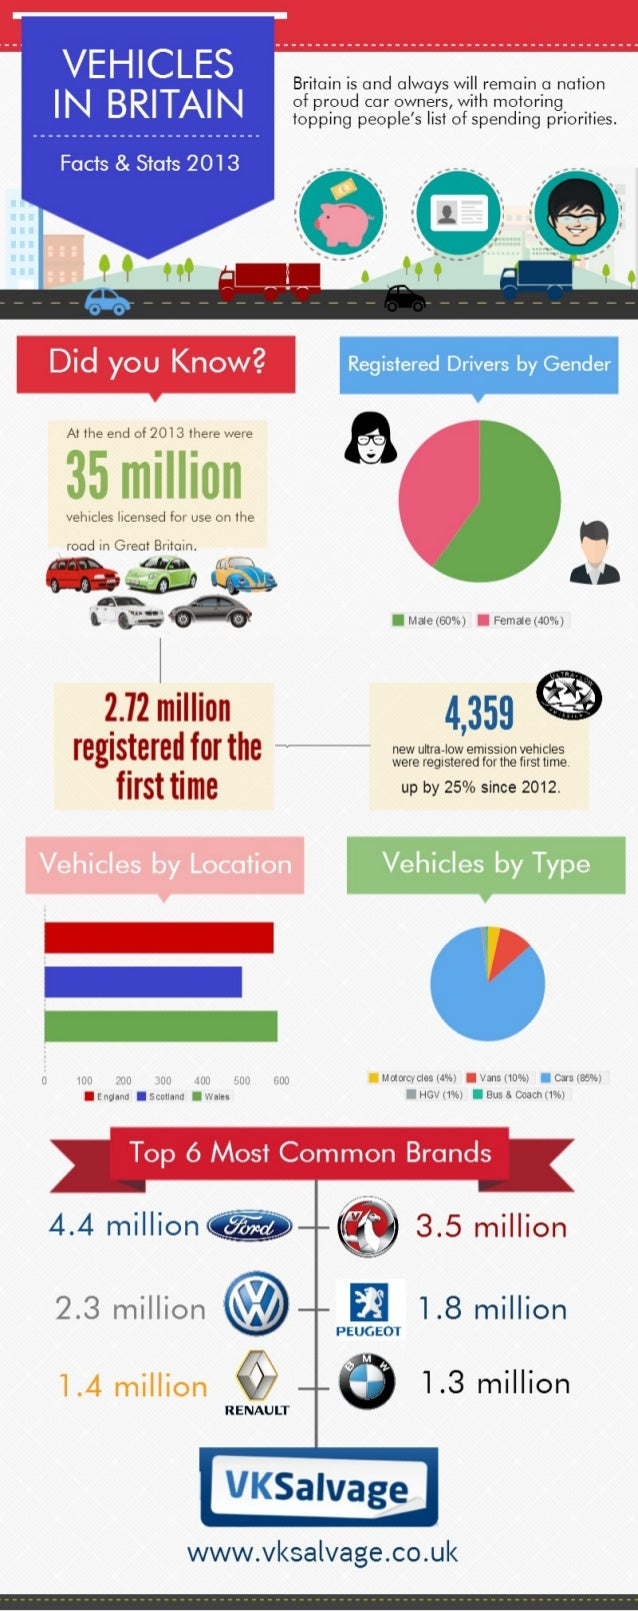 Vehicles in the UK: Facts & Statistics